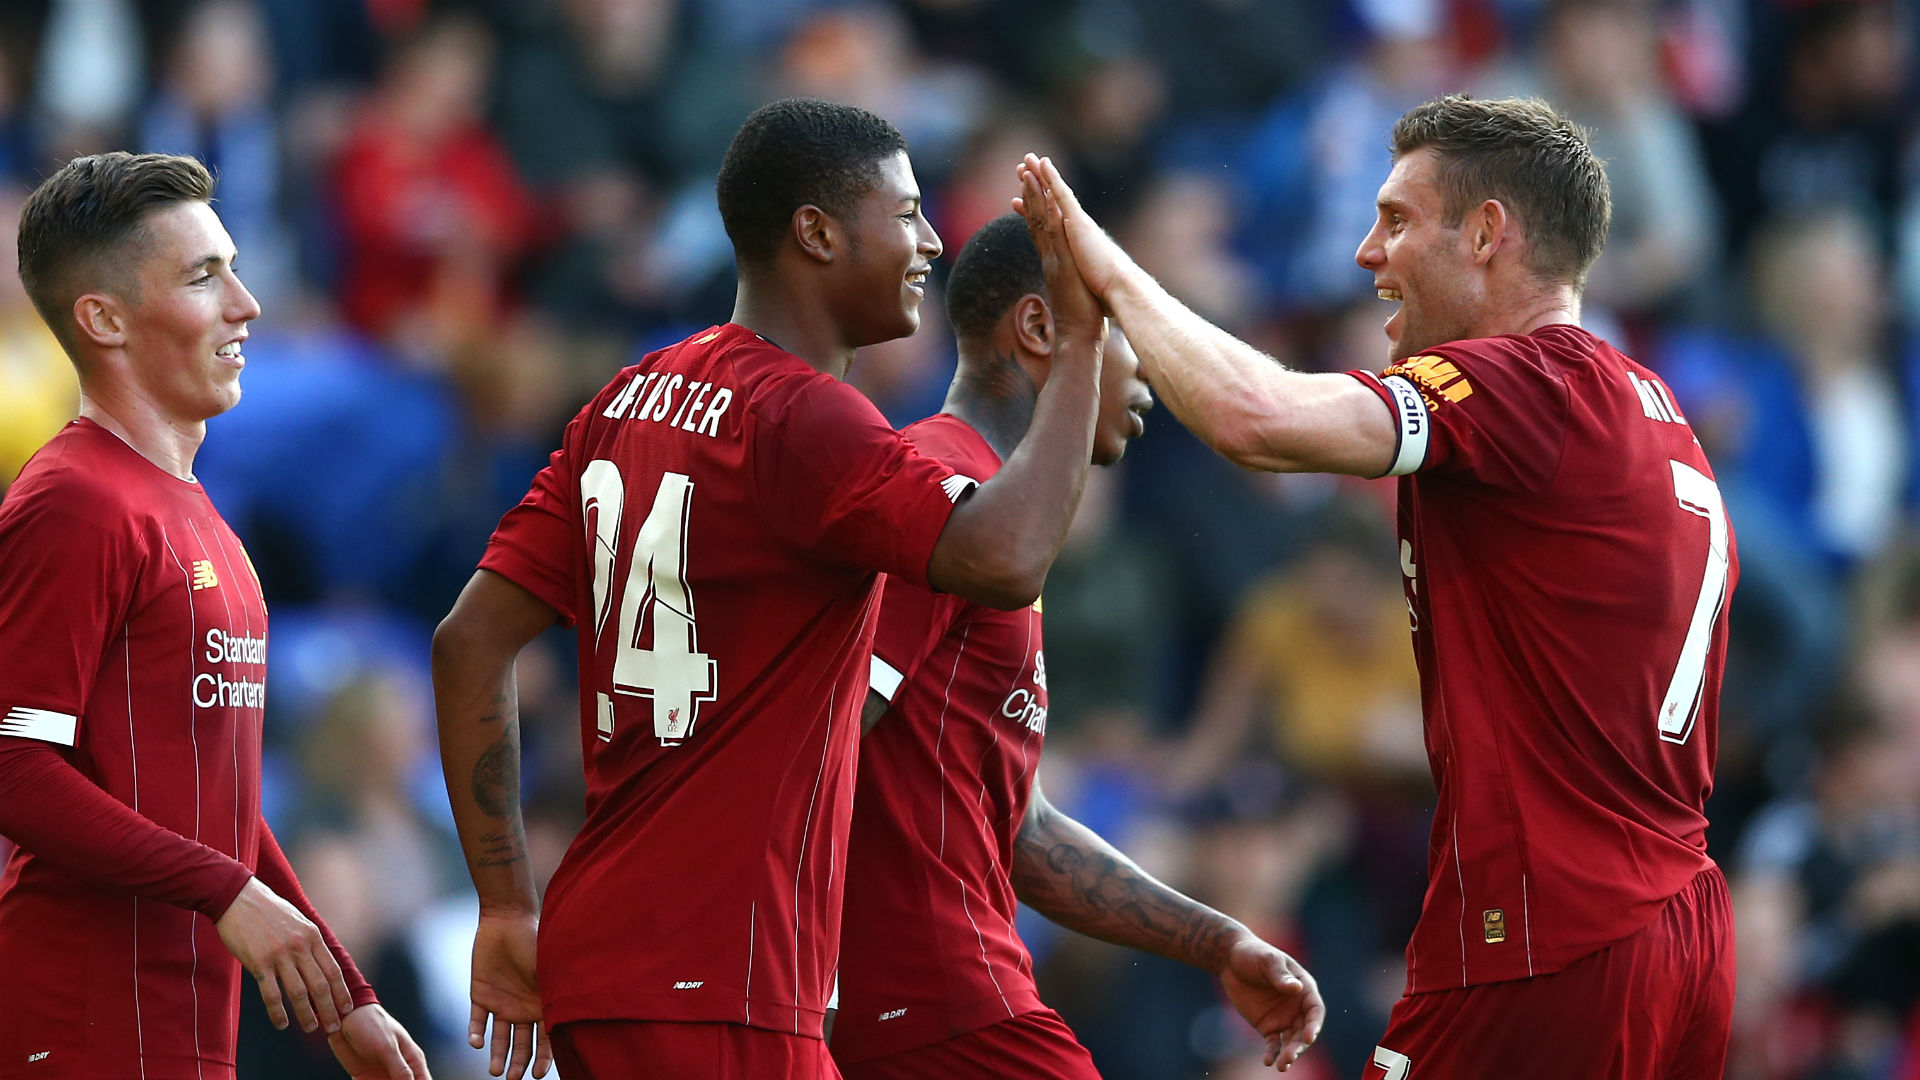 Rhian Brewster netted a double as Liverpool claimed a 6-0 friendly win against Tranmere Rovers, while Marseille lost to Accrington Stanley.